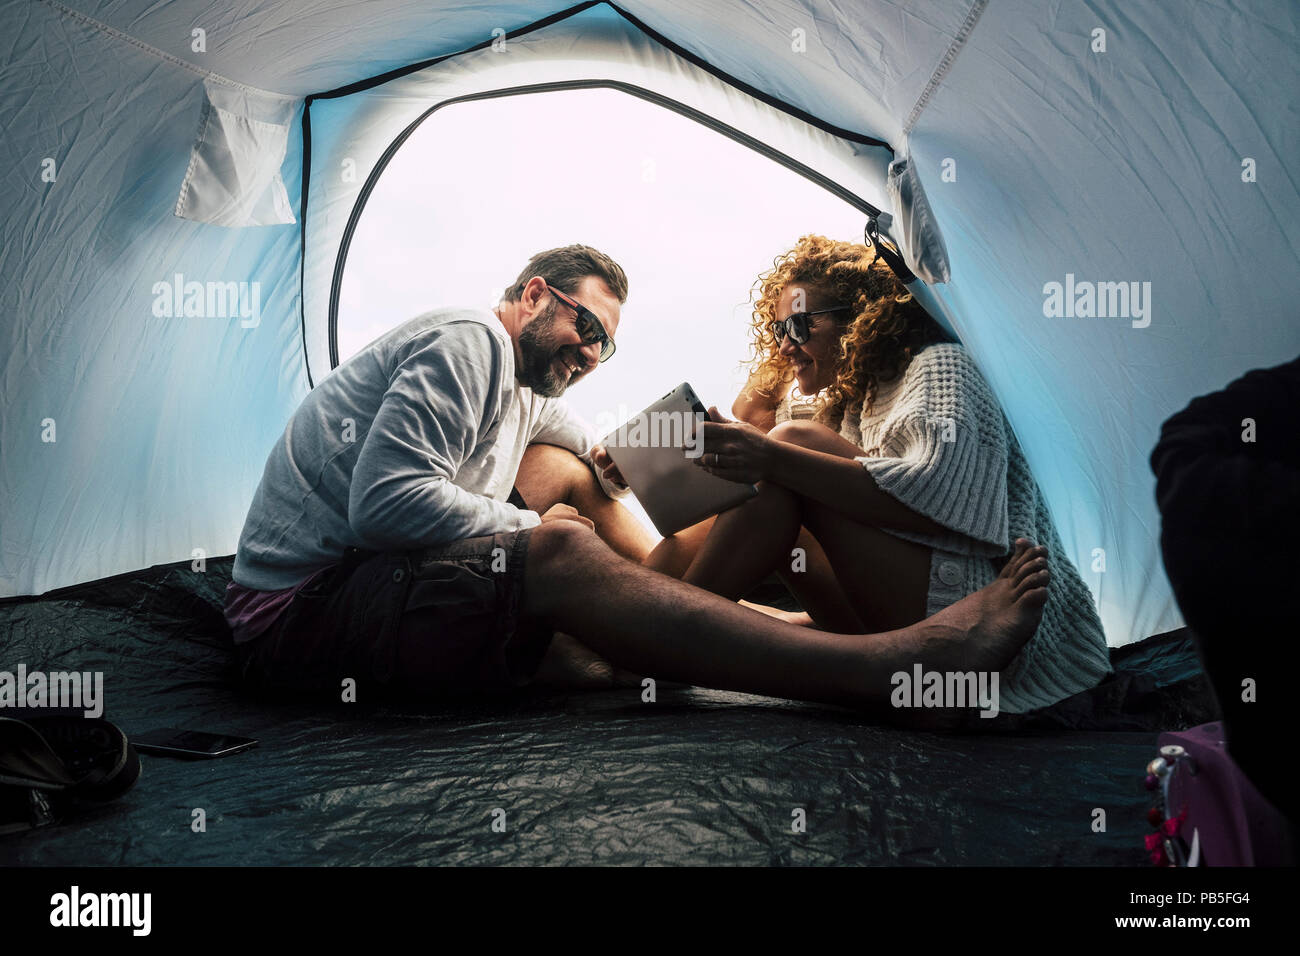 happy young middle age couple married and in relationship enjoy the camping inside the tent and use tablet internet technology. love and friendship fo - Stock Image